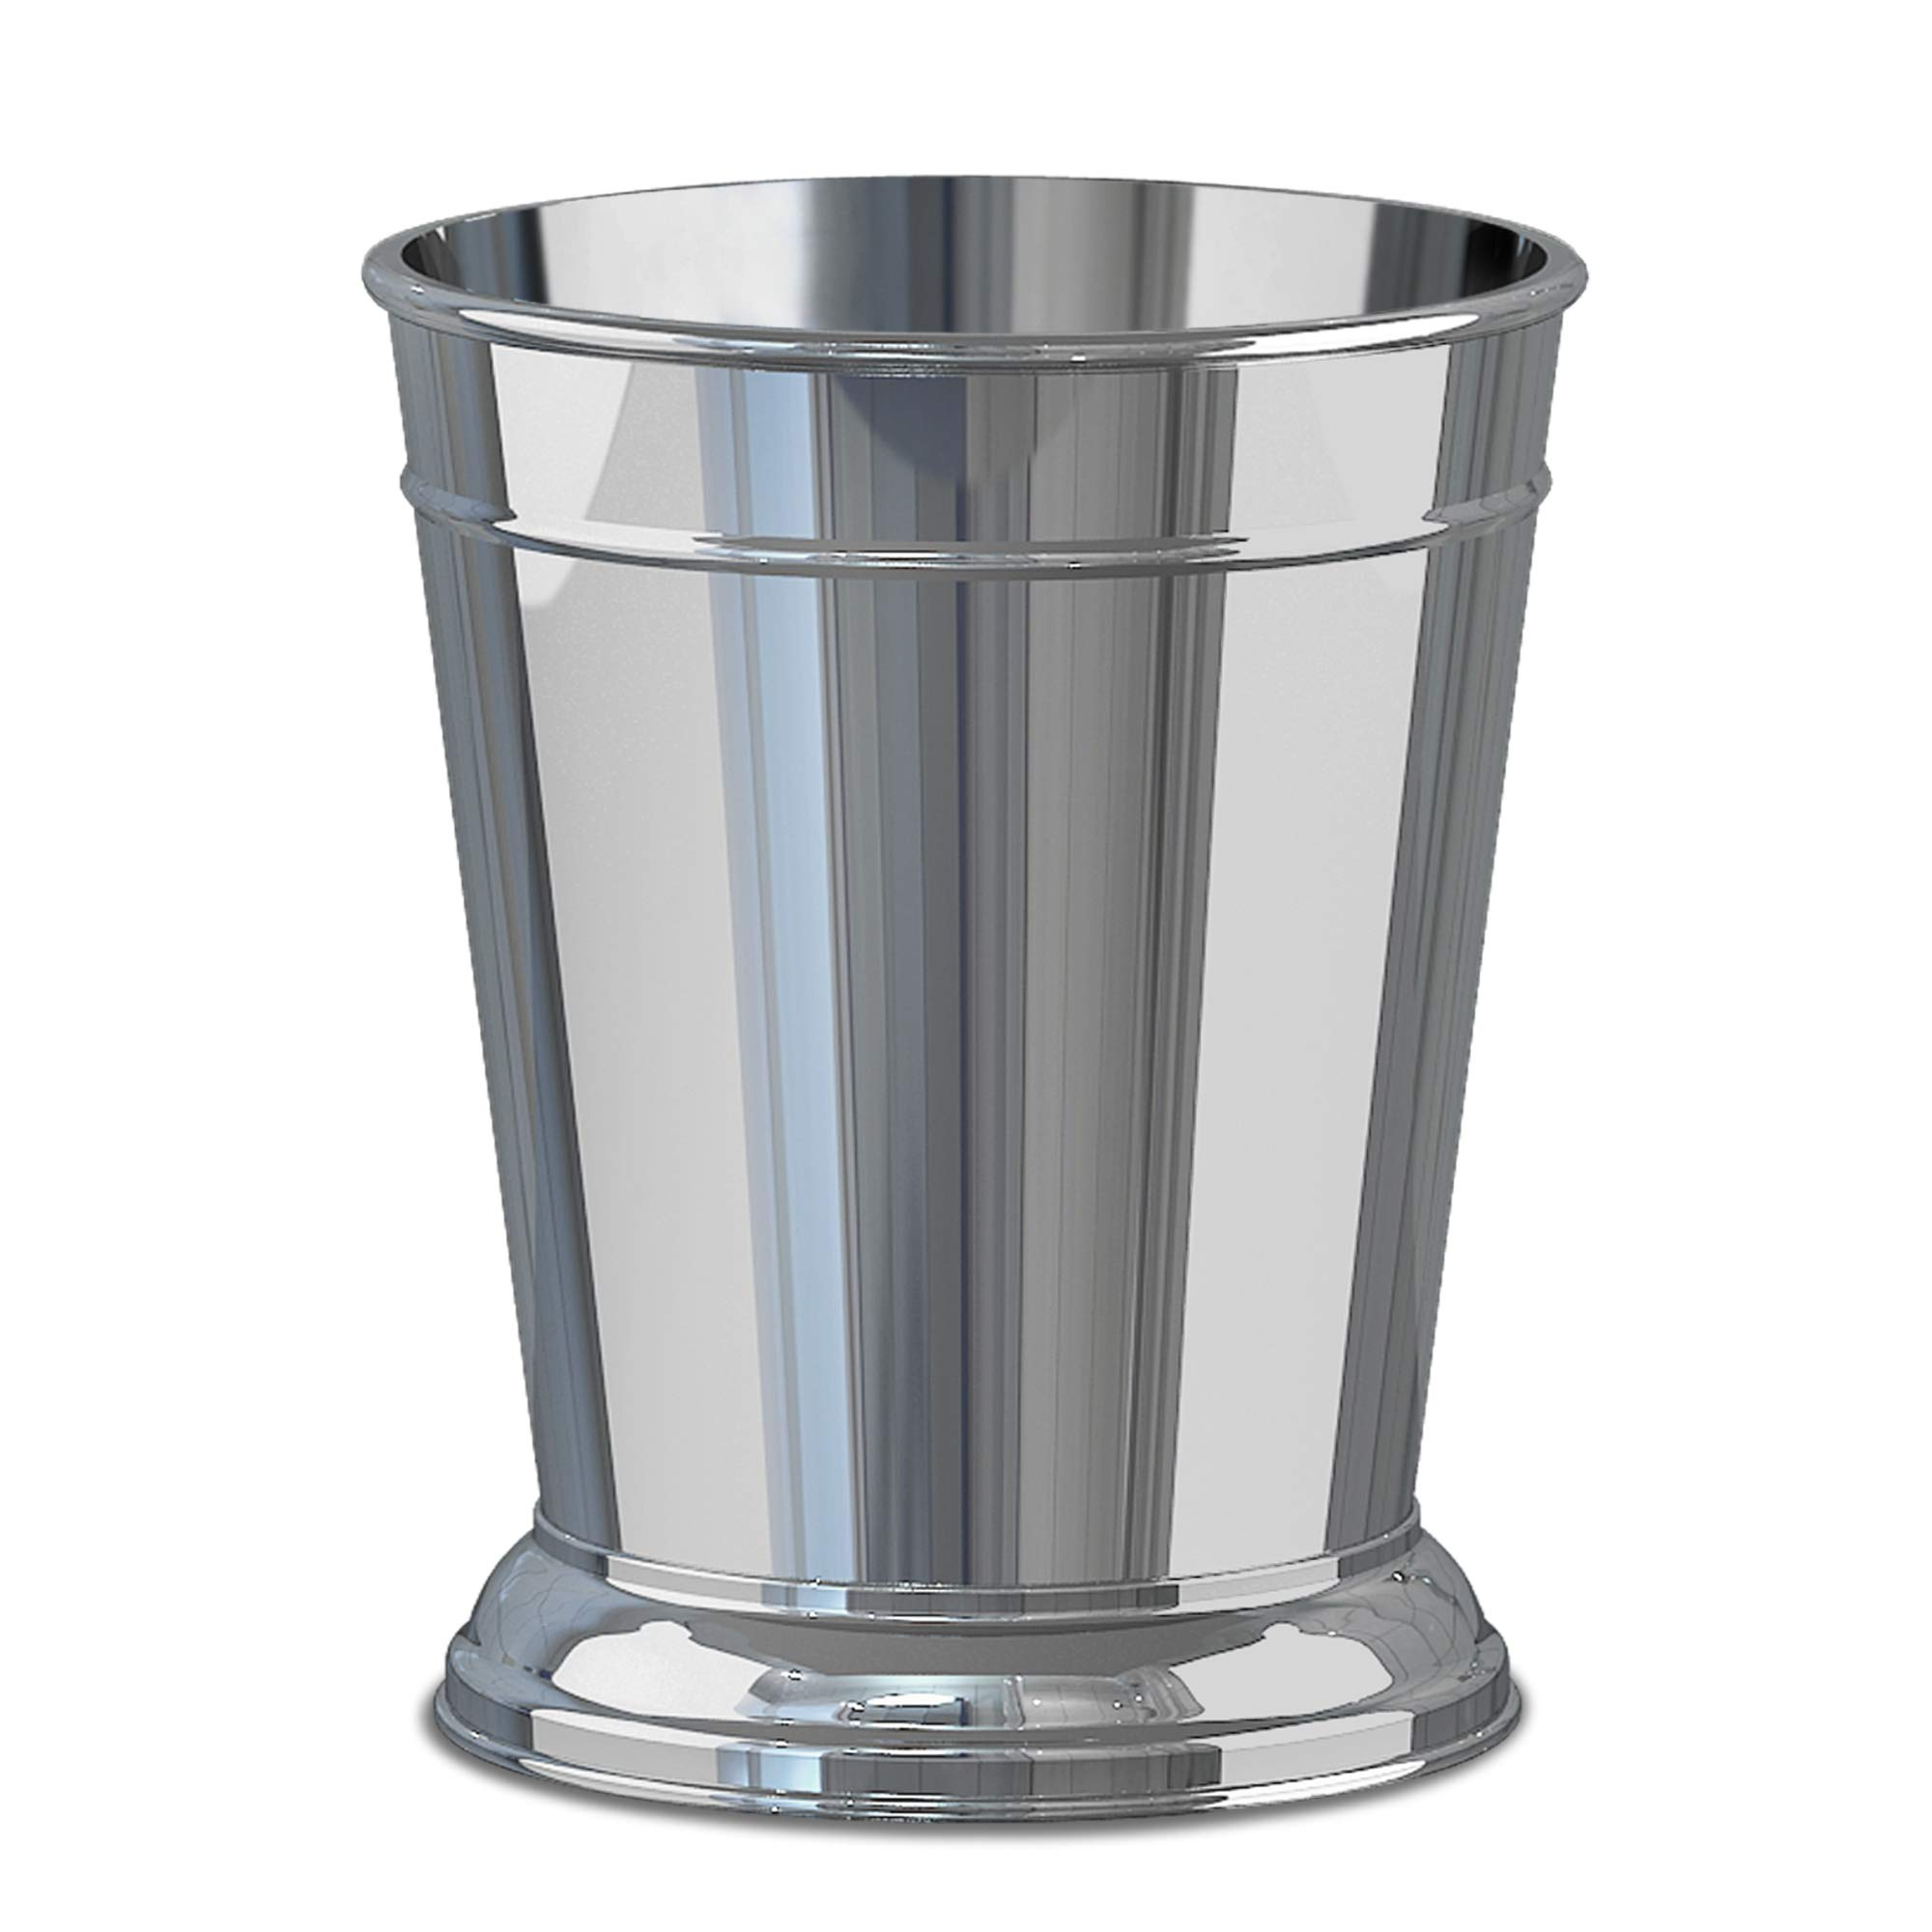 CDM product nu steel Timeless Wastebasket, 9-Quart big image